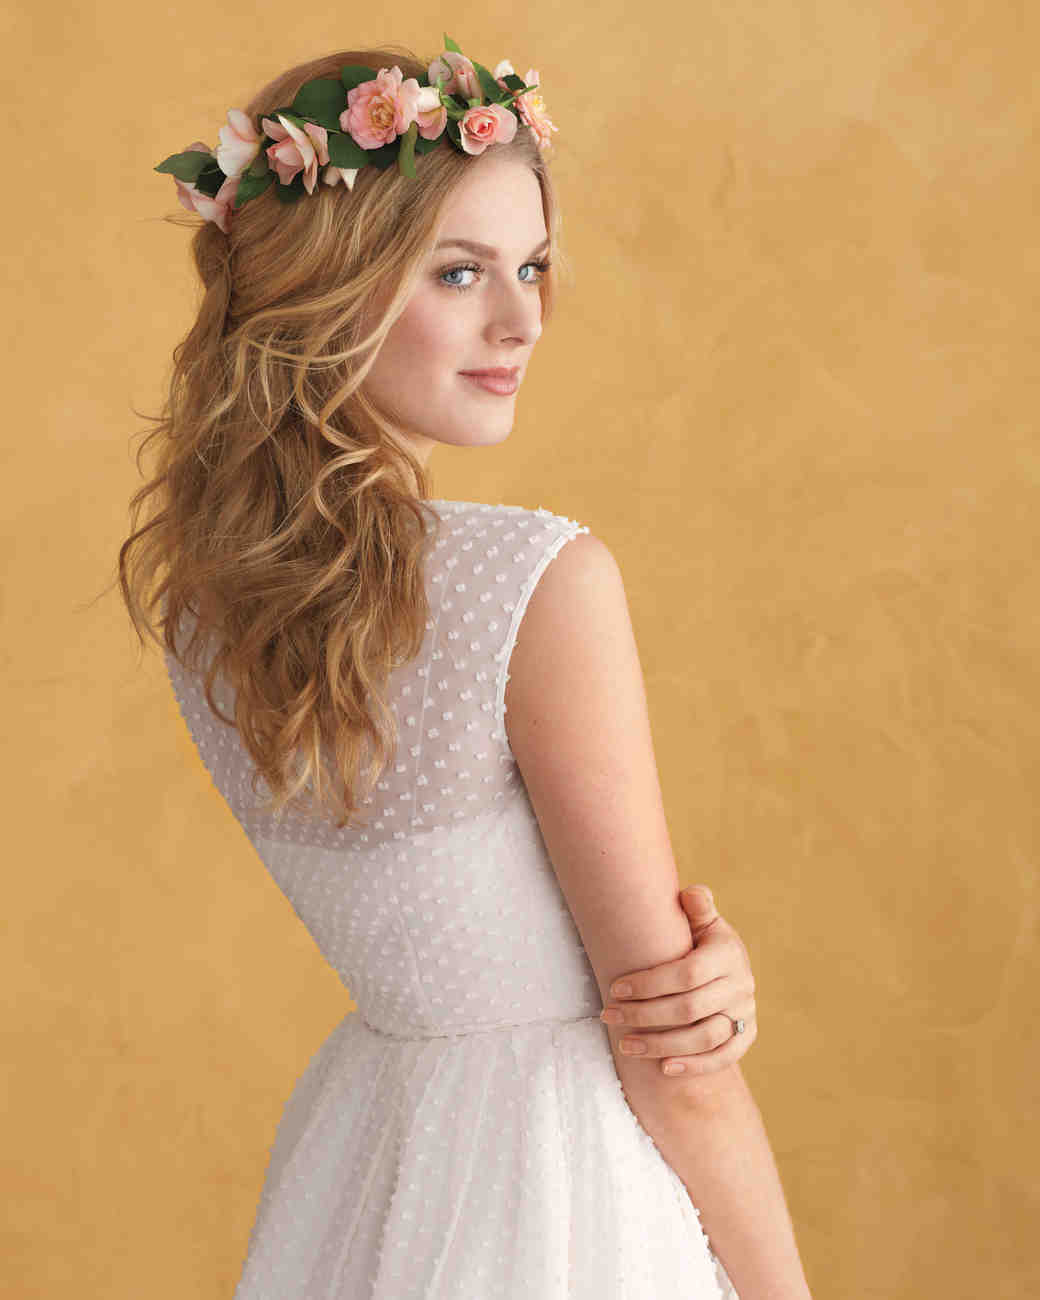 Bride Hair Style Floral Wedding Hairstyles  Martha Stewart Weddings